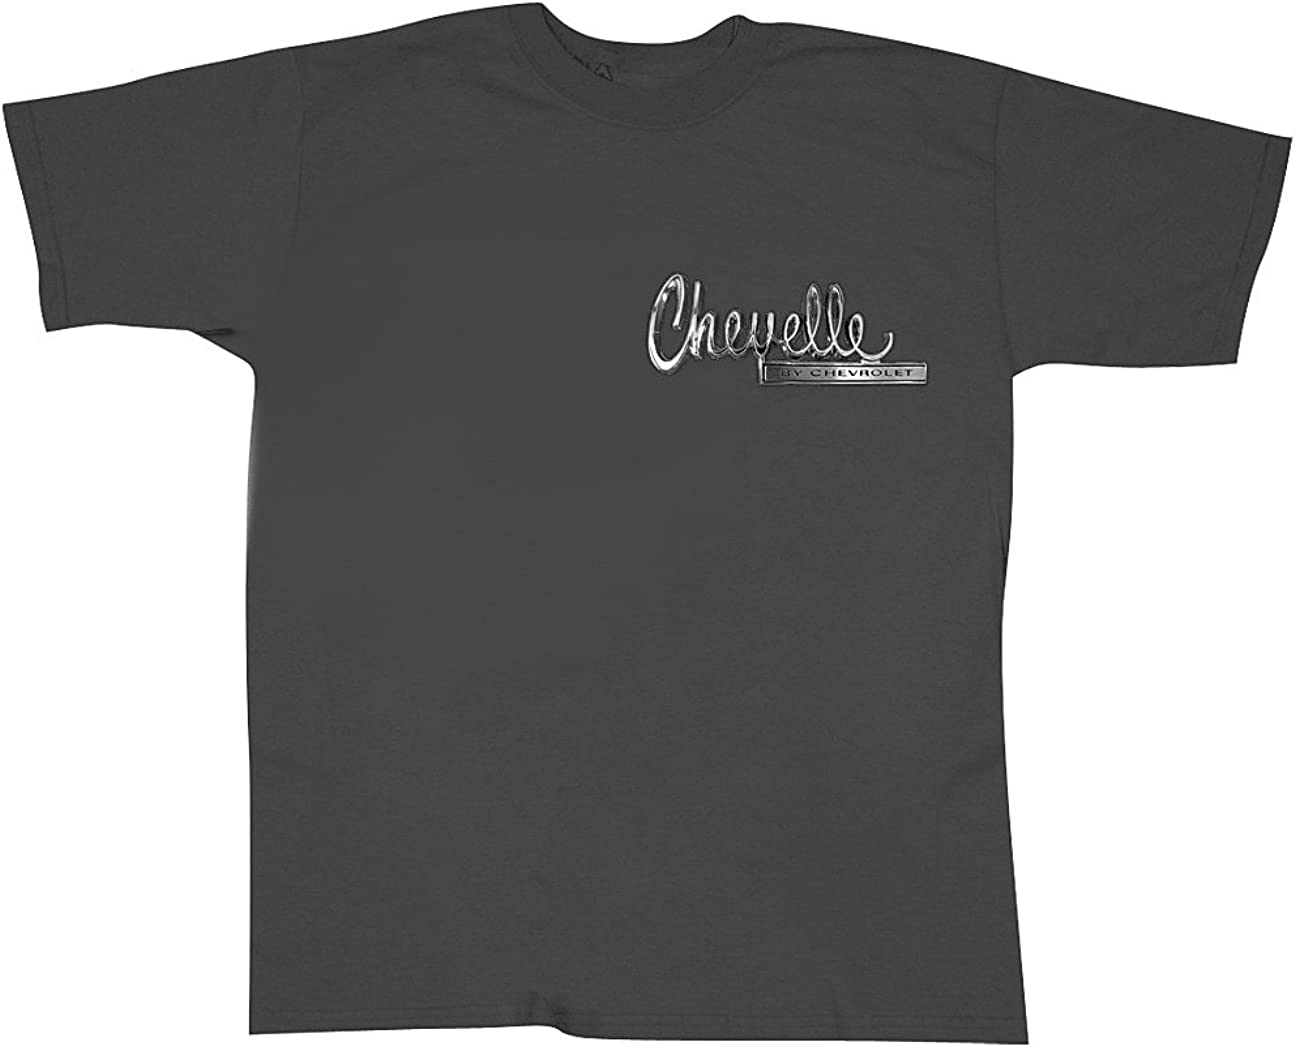 GM Chevrolet Chevelle Classic Car Lineup Automobile T-Shirt CVCH3-parent